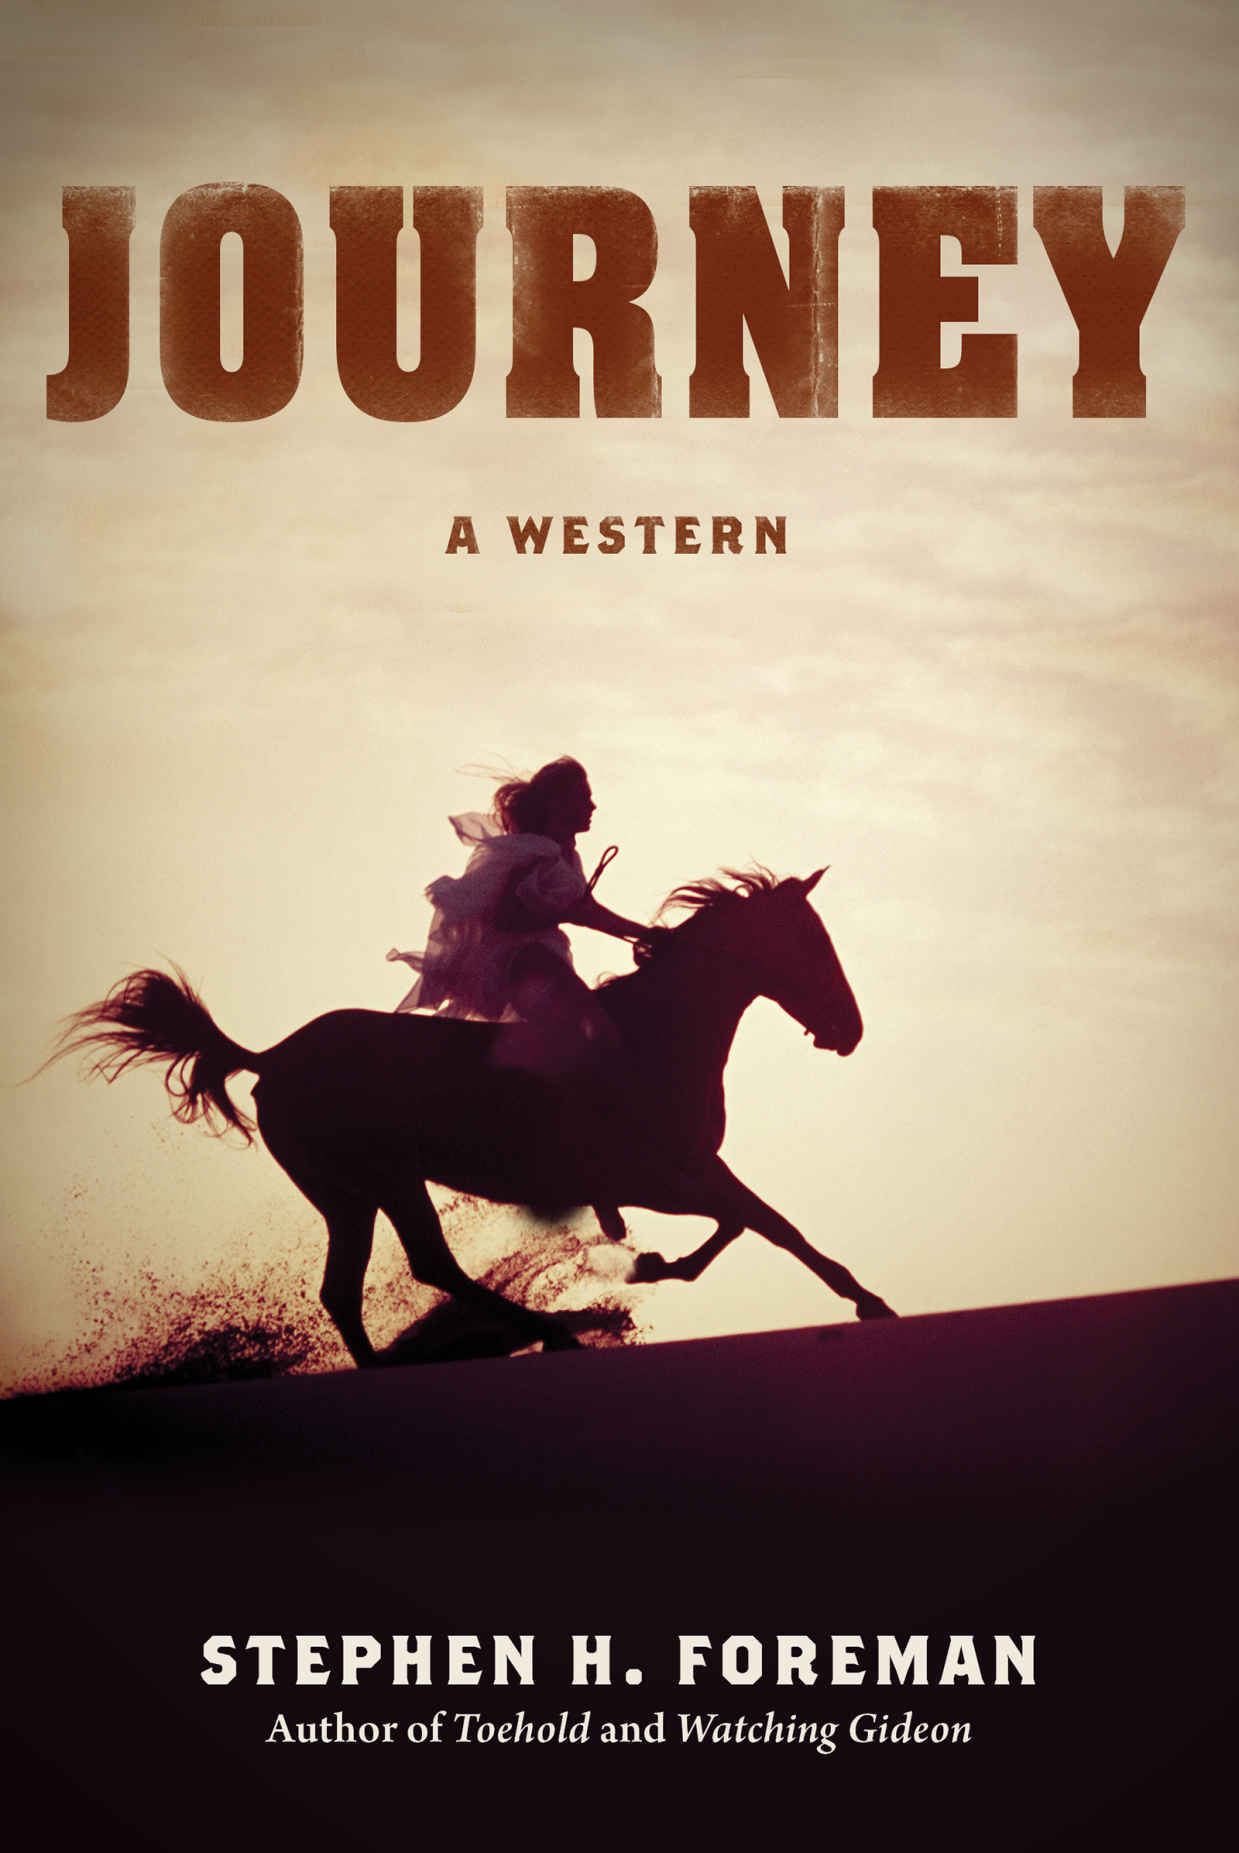 Journey, a Western is Baltimore-born author Stephen H. Foreman's latest novel. He discusses it here exclusively with Voice of Baltimore and will do so again publicly June 17th at The Ivy Bookshop.